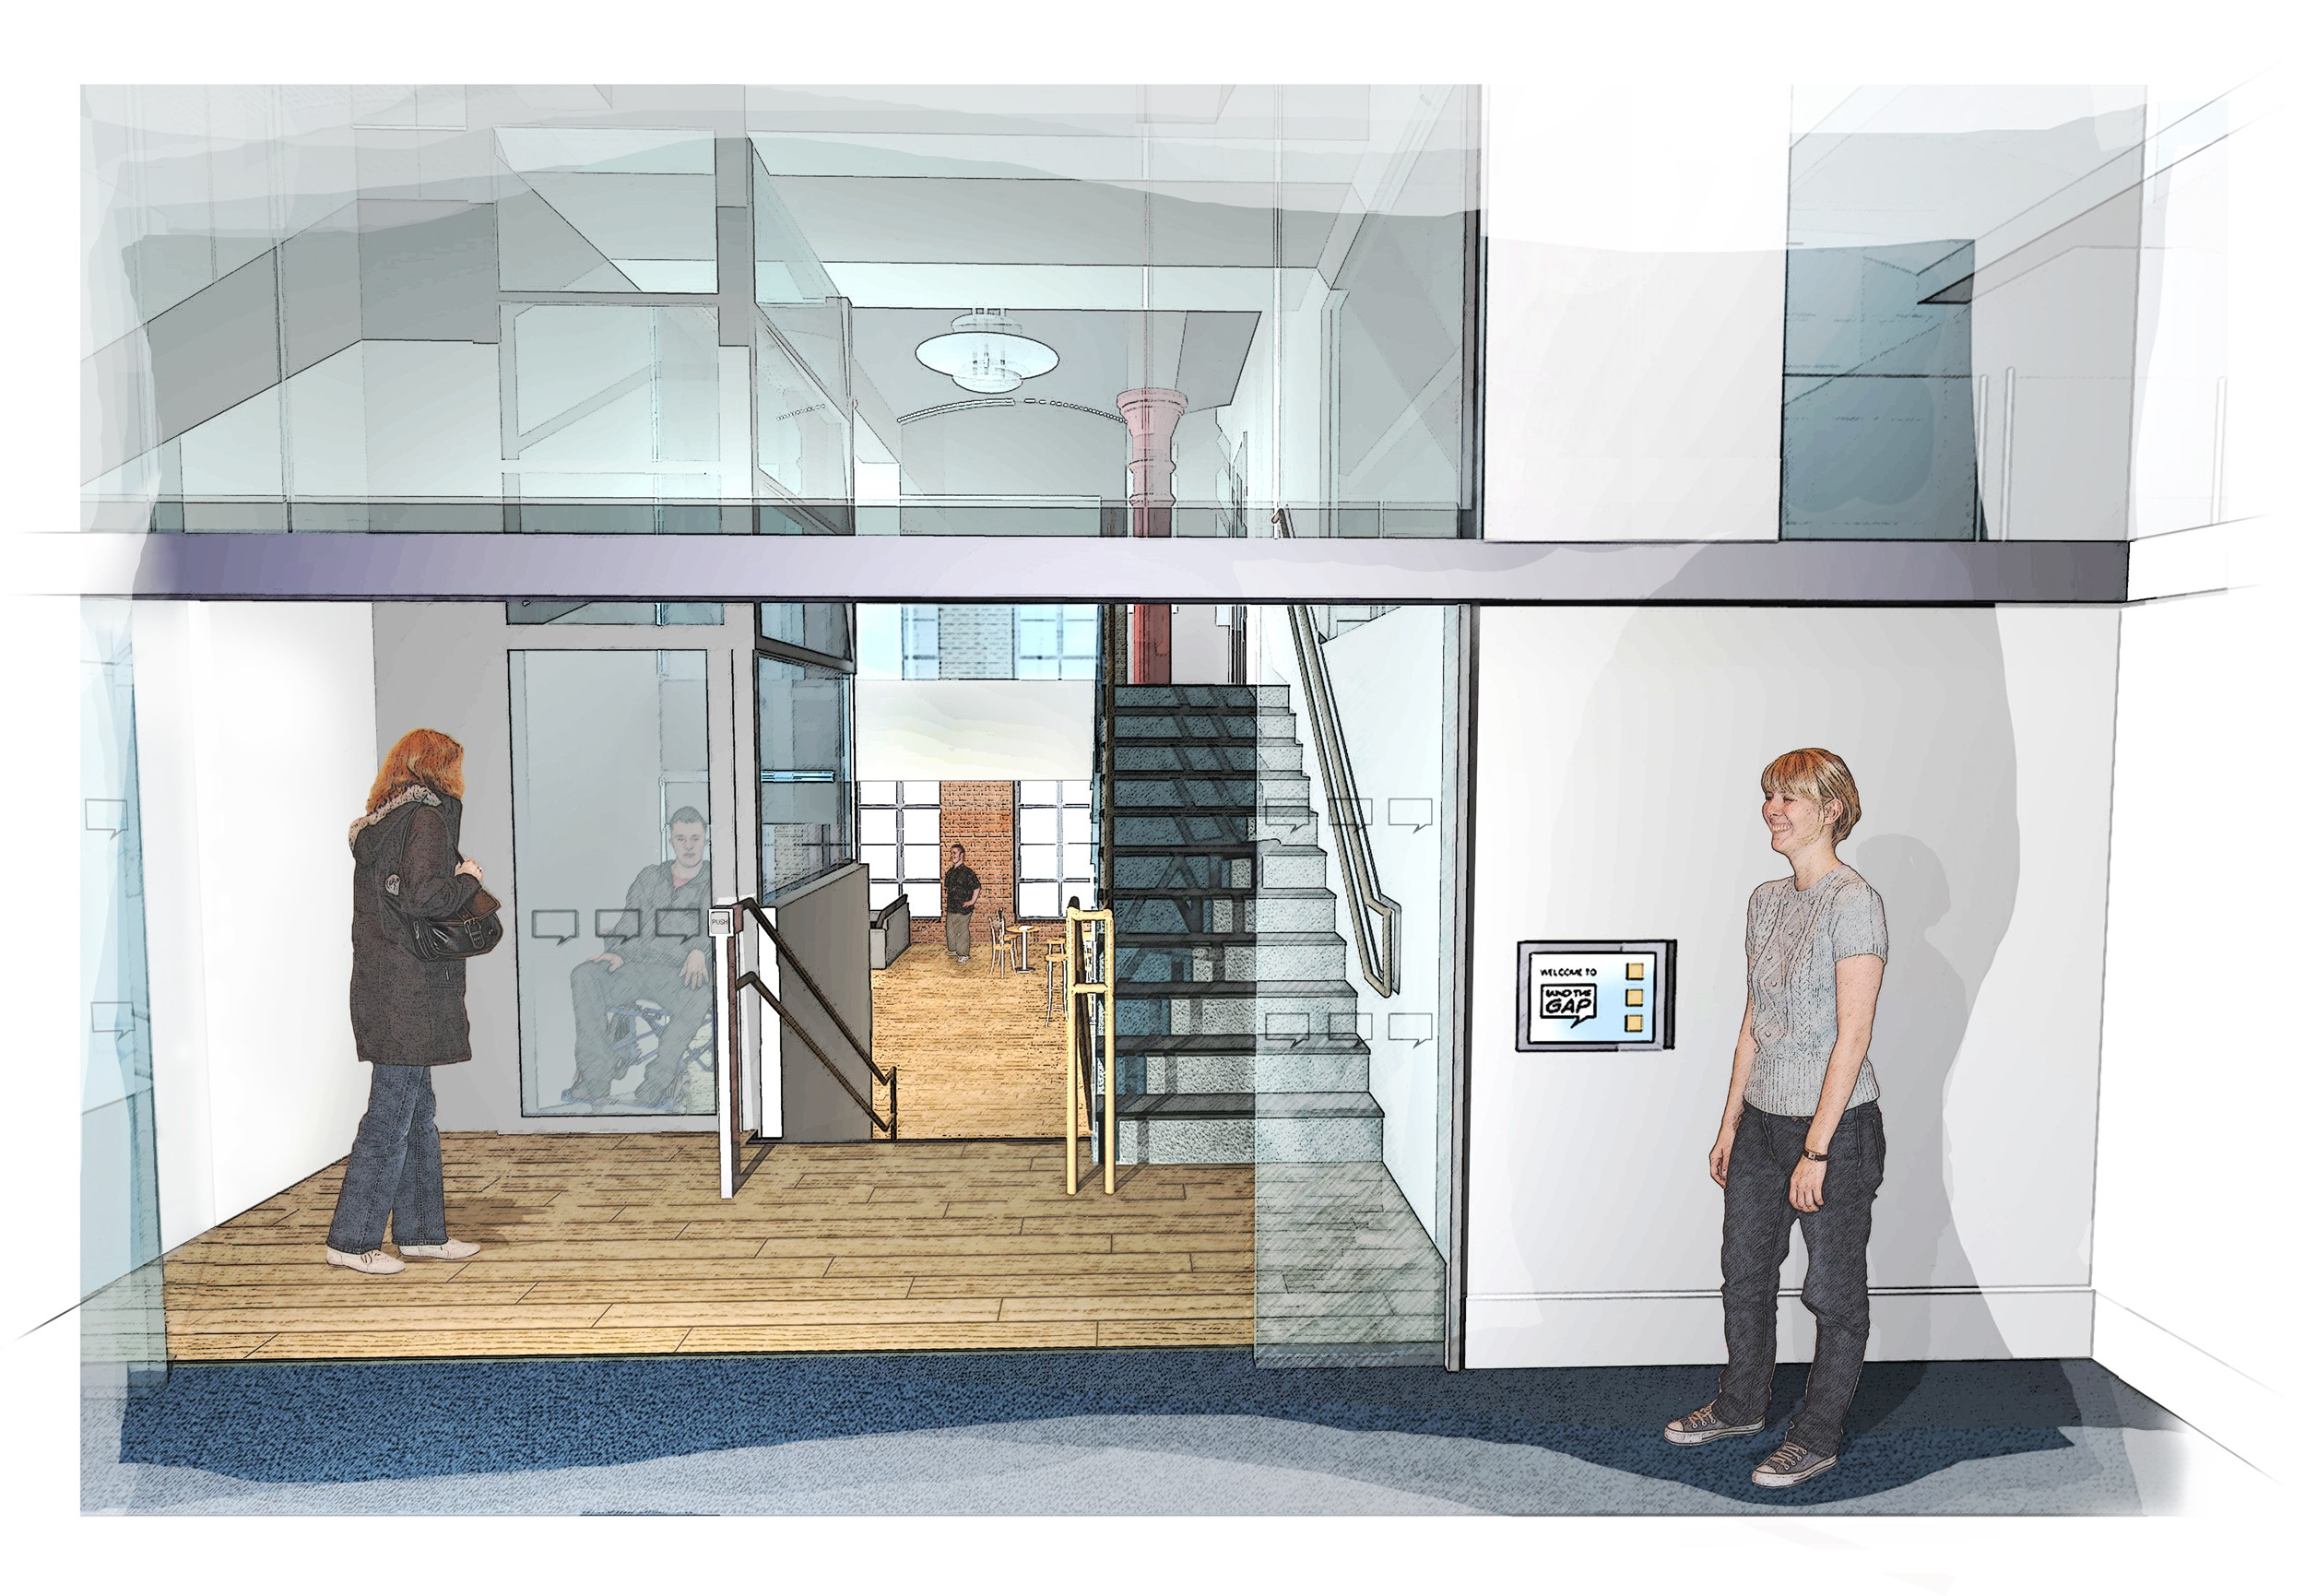 People of various physical abilities using the elevator and stairs